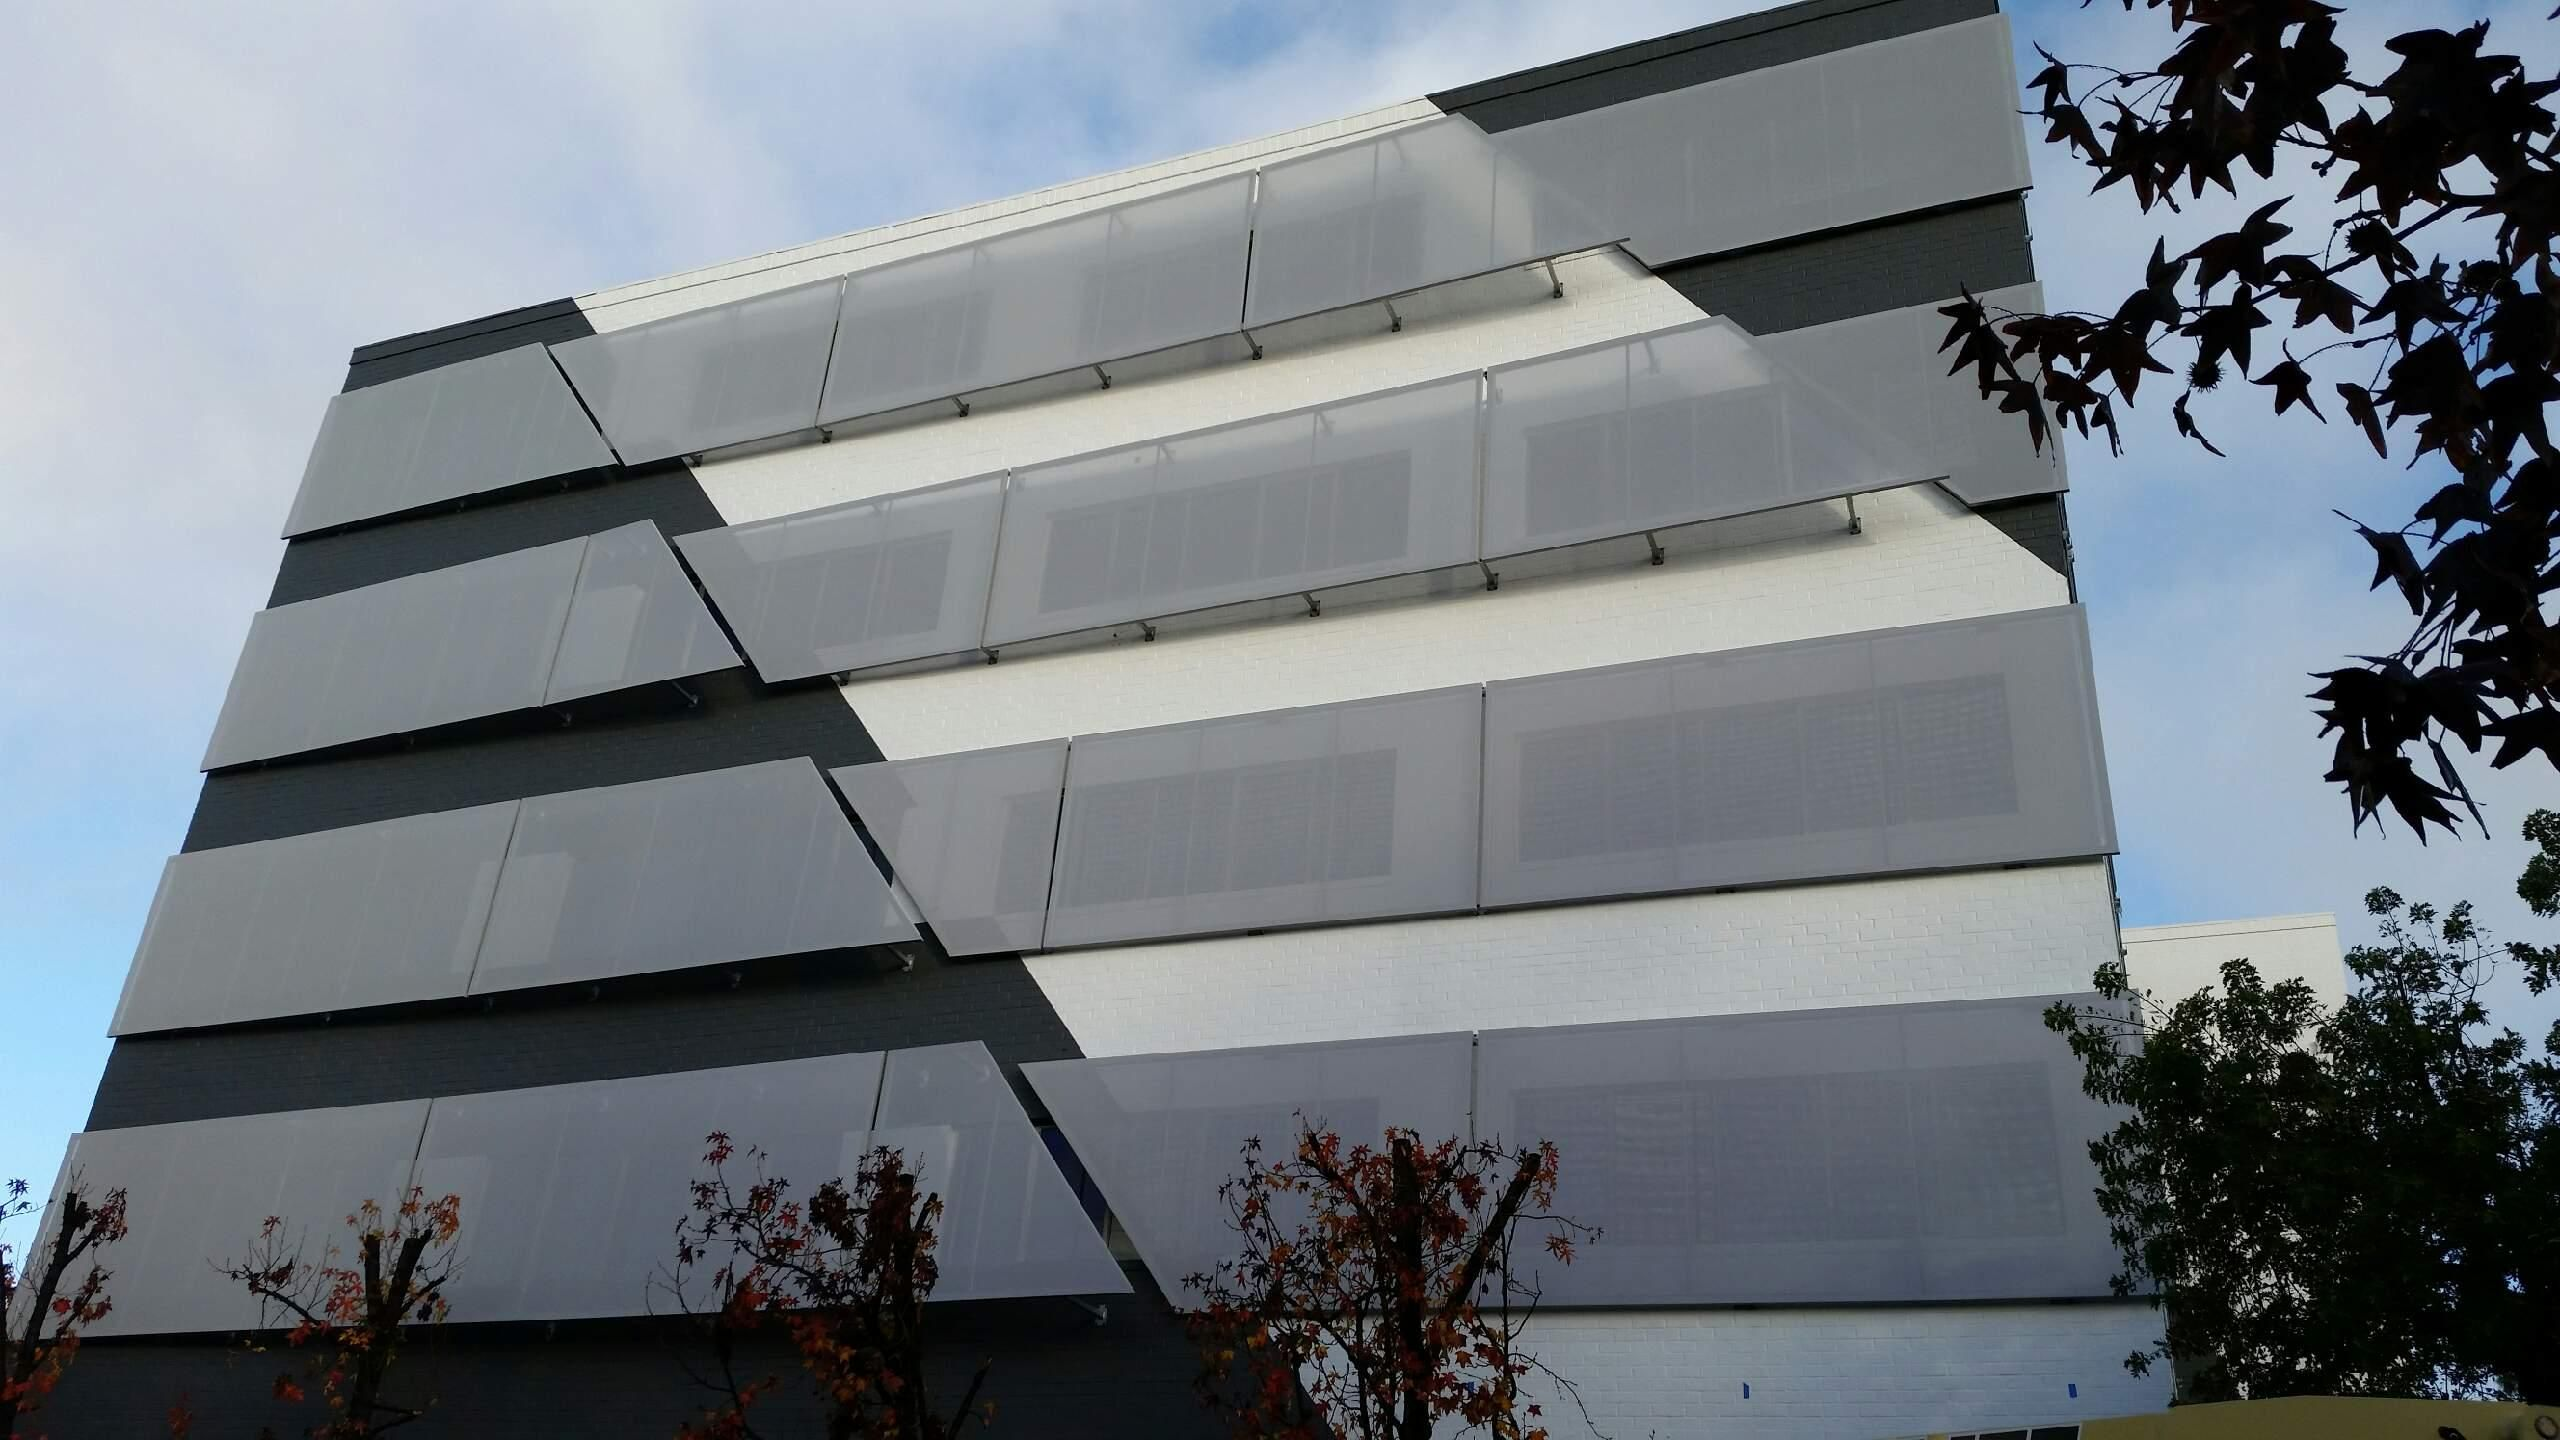 Telenor Arena • Oslo Norway • Bioclimatic textile facade made with Serge Ferrari flexible posite material Pinterest